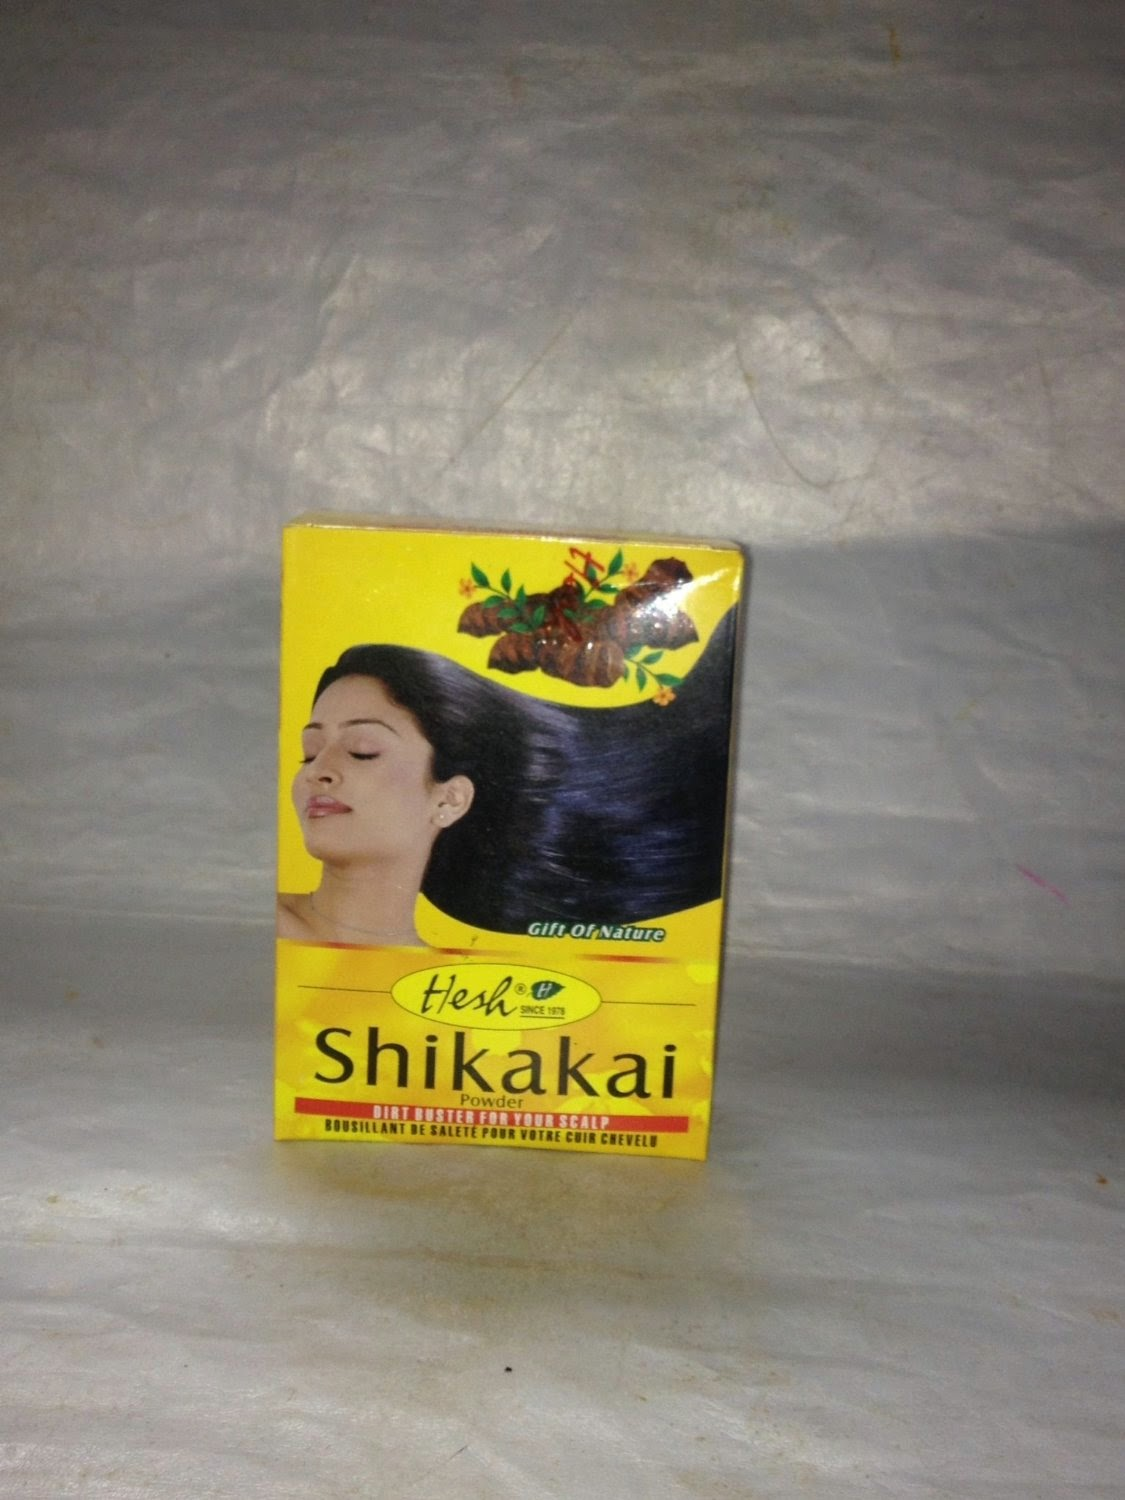 shikakai for natural hair